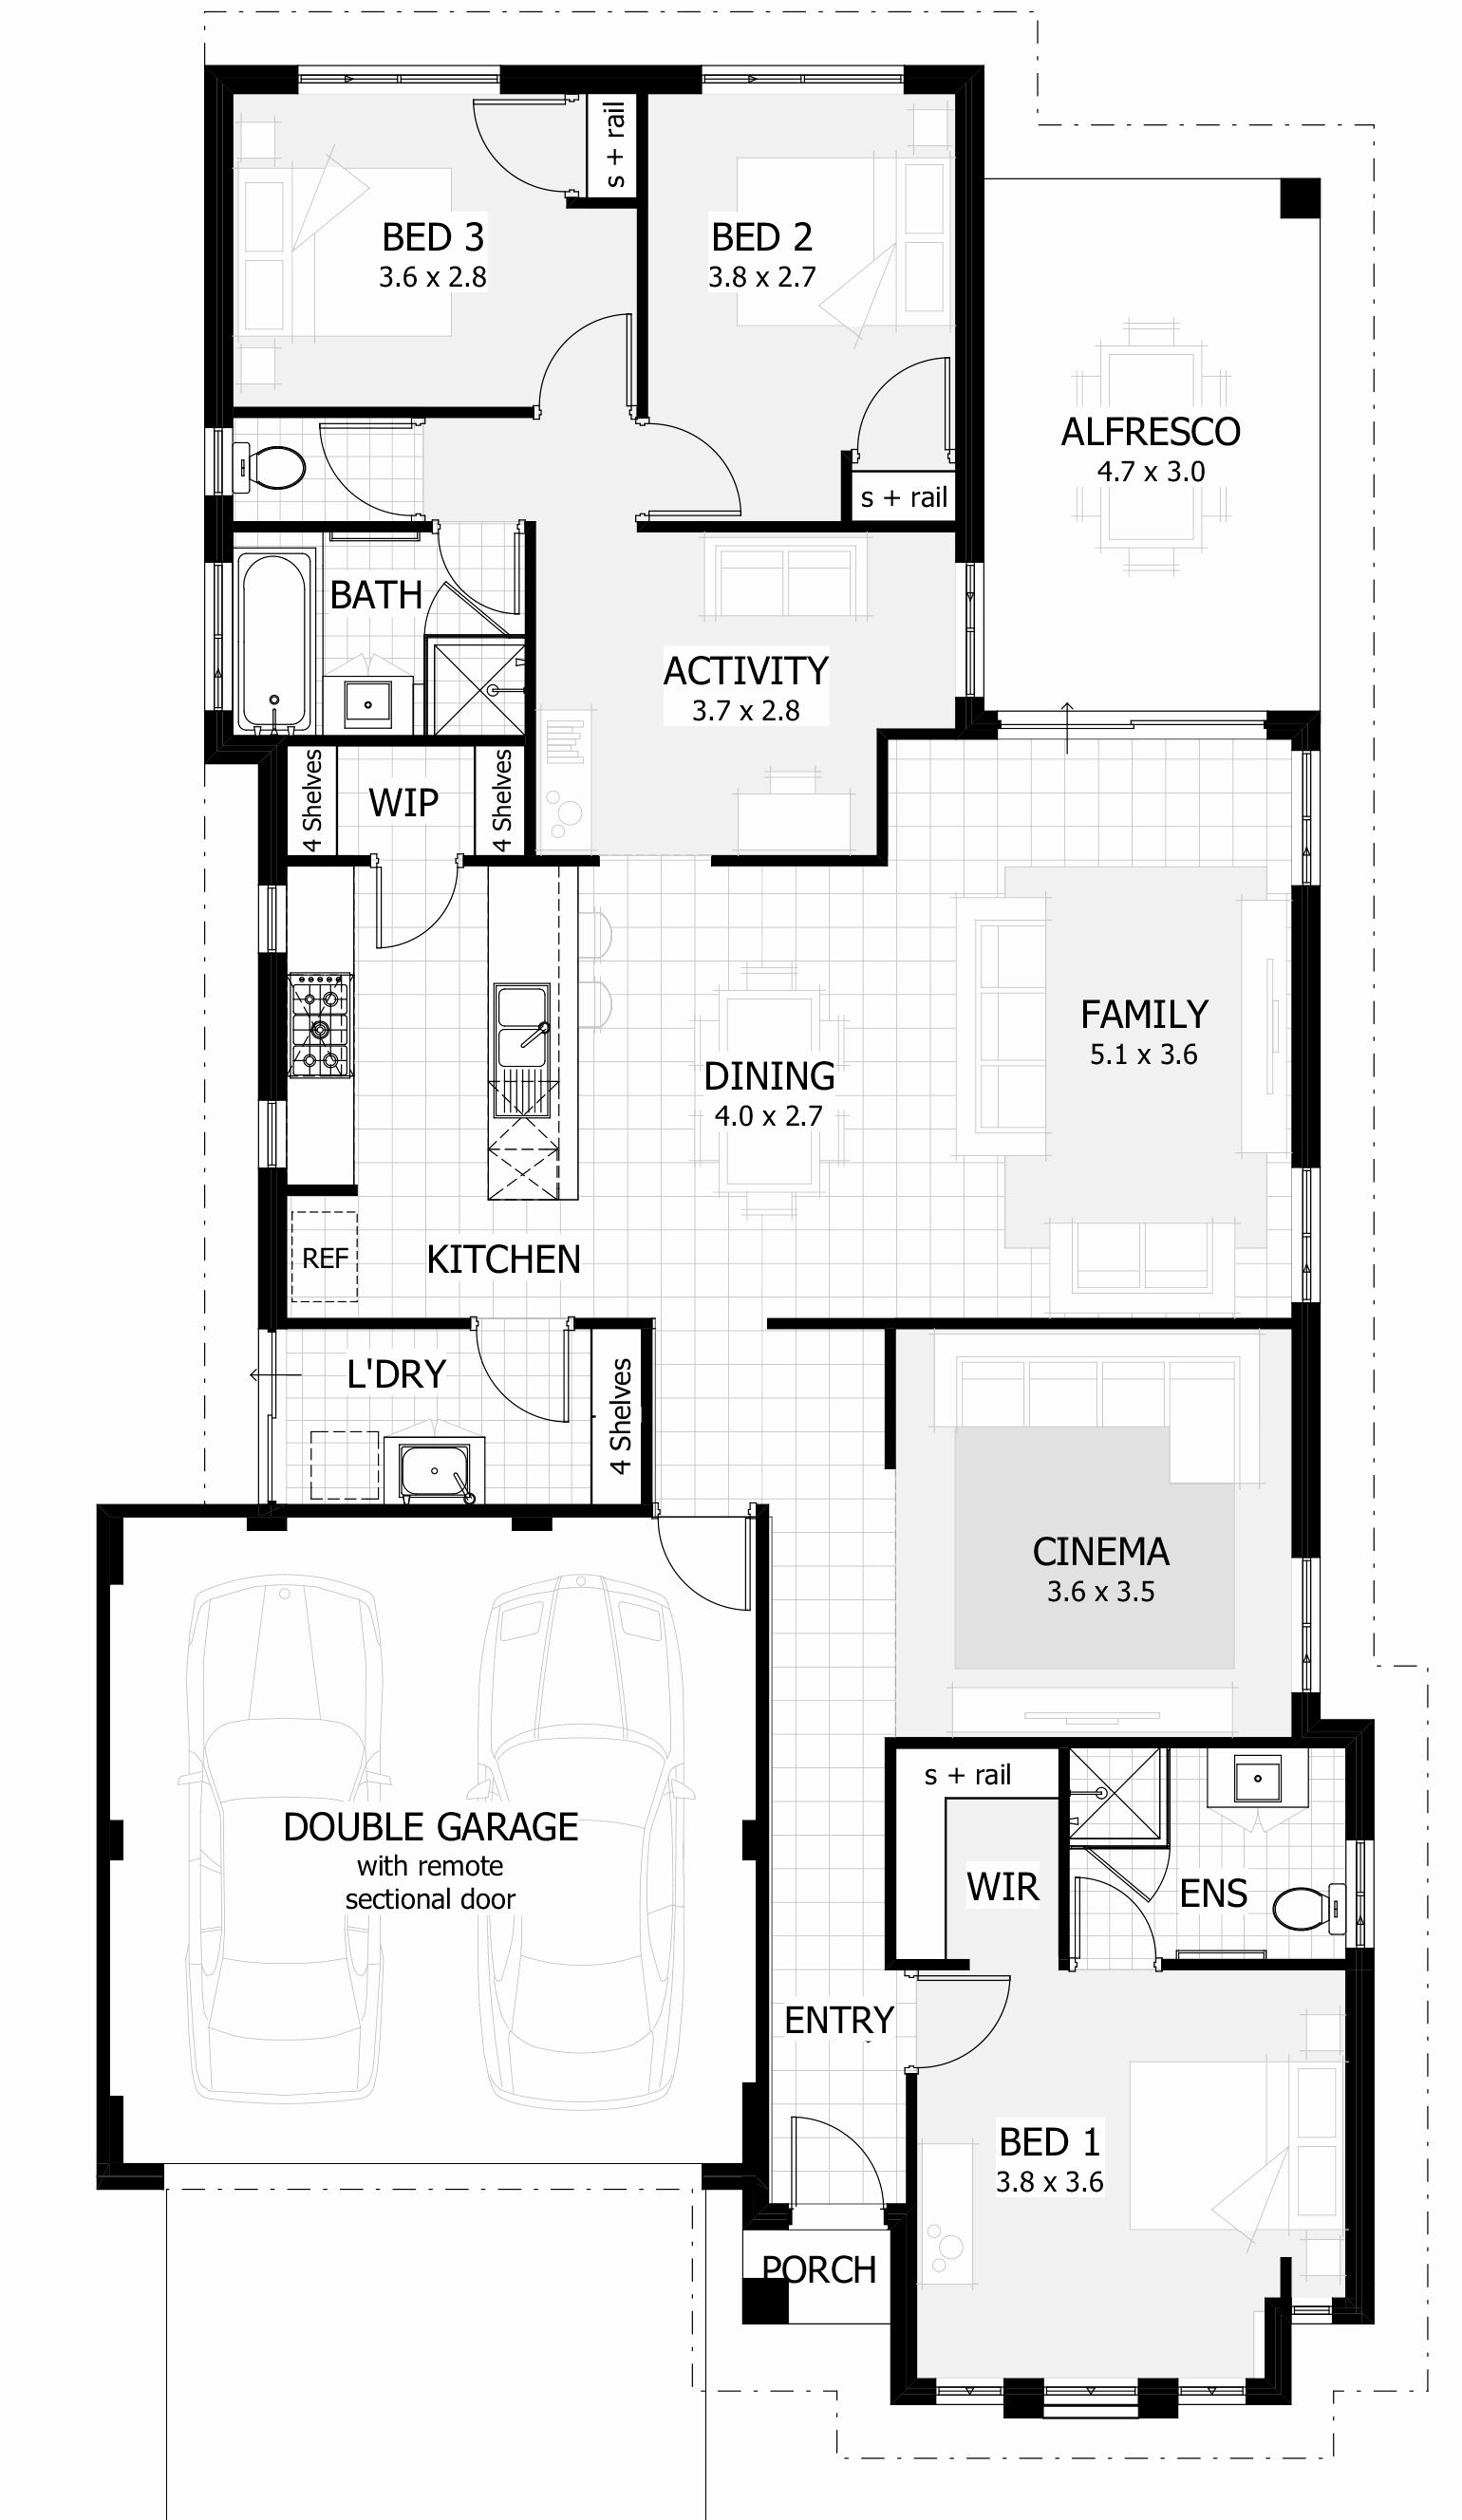 4 bedroom house plans with garage south africa